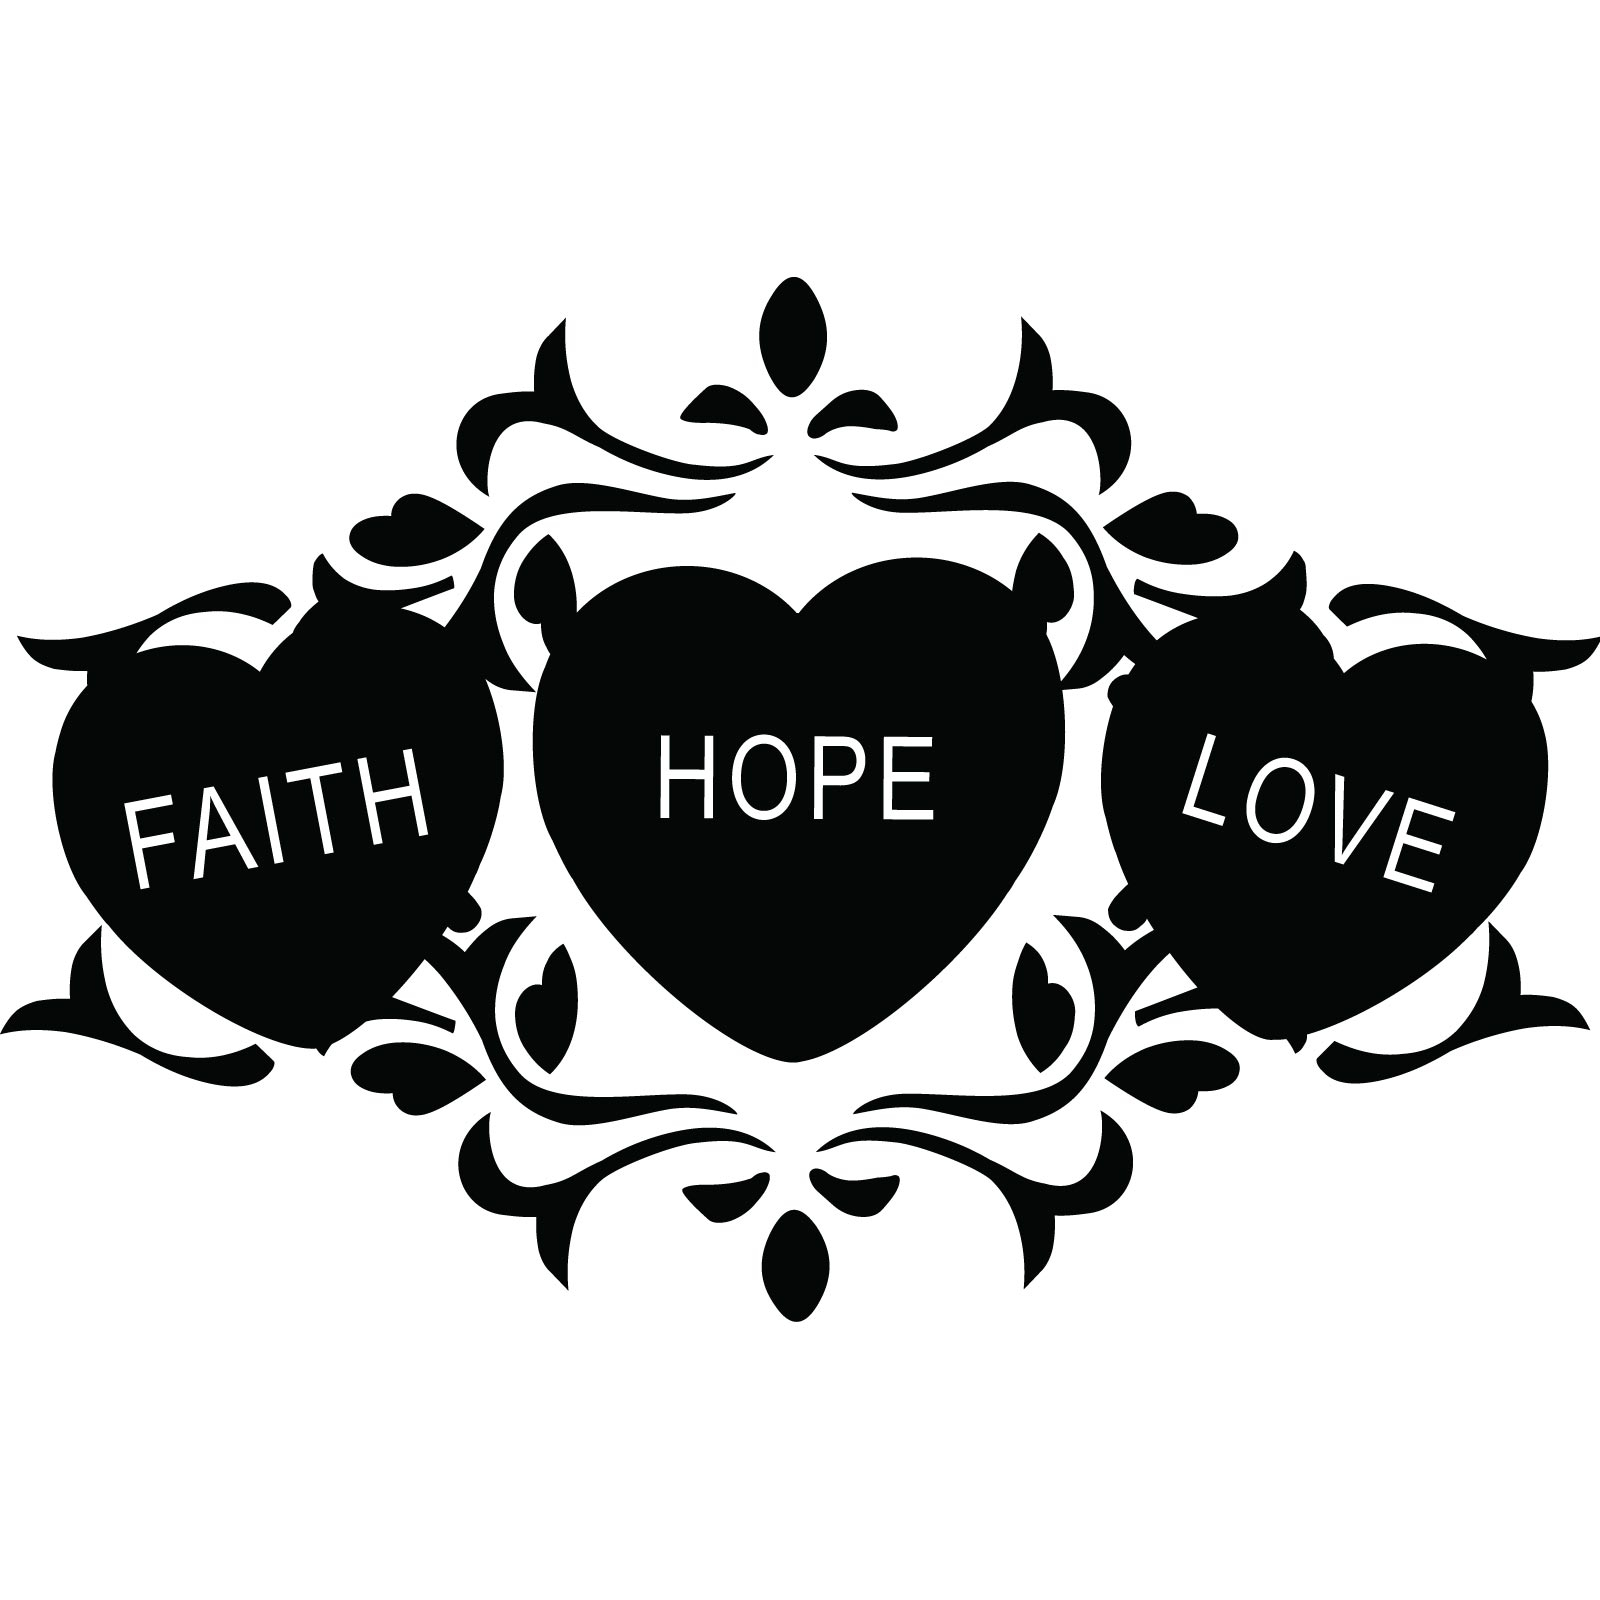 Faith hope love clipart with jesus.